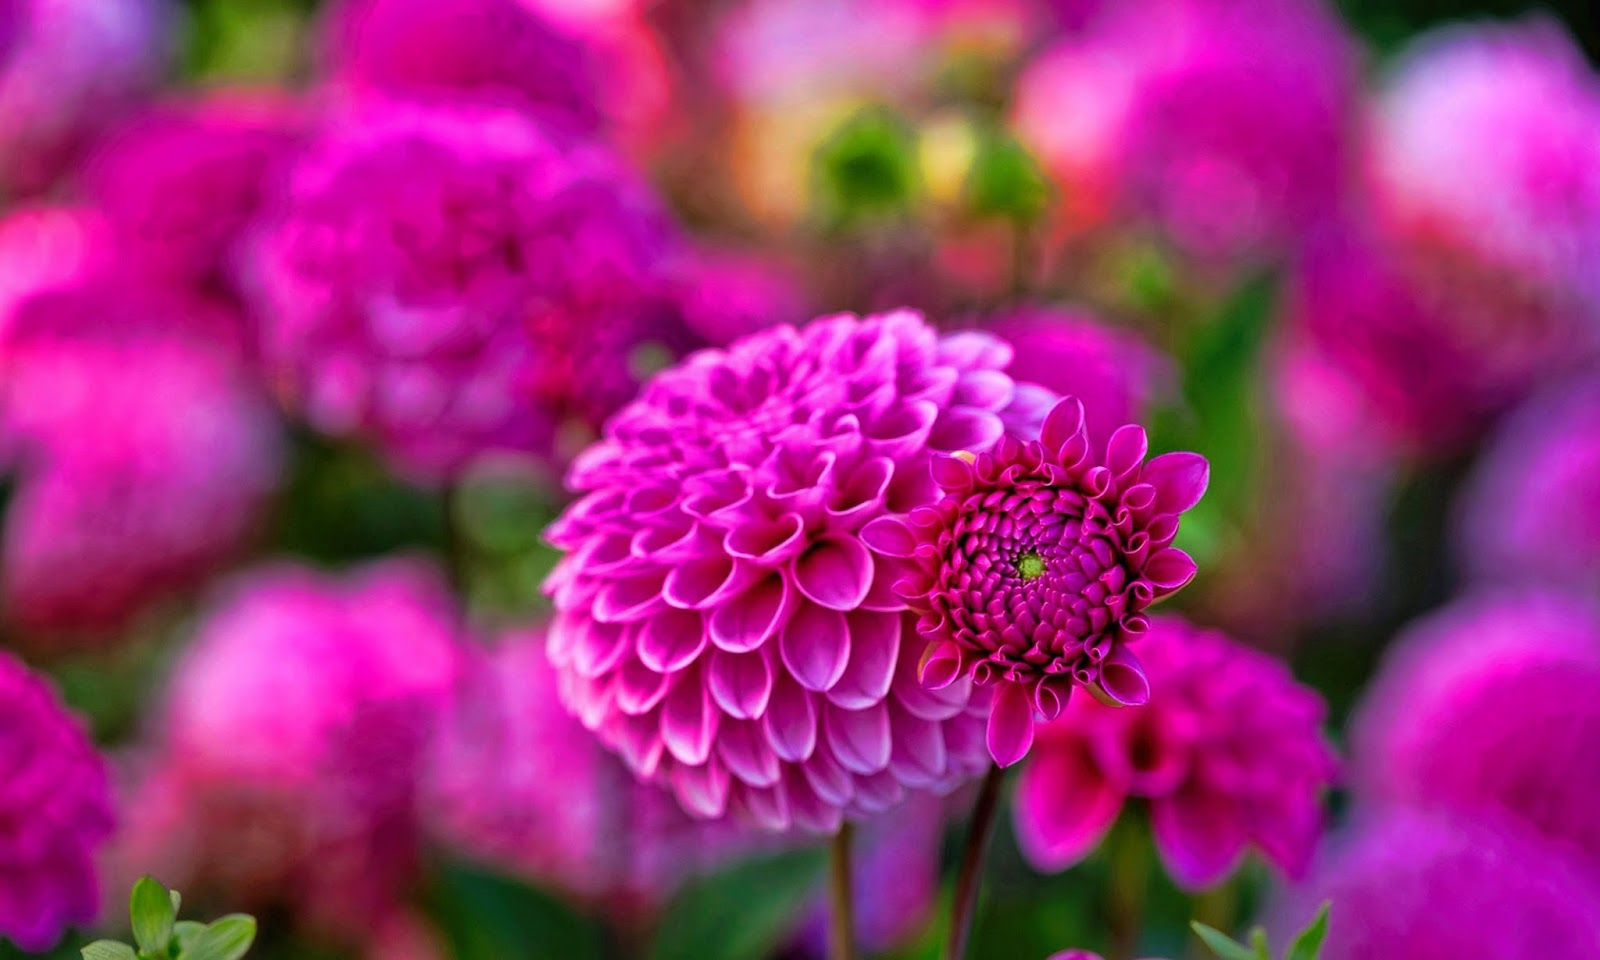 Dahlia Flower HD Wallpapers | HD Wallpapers (High Definition) | Free Background